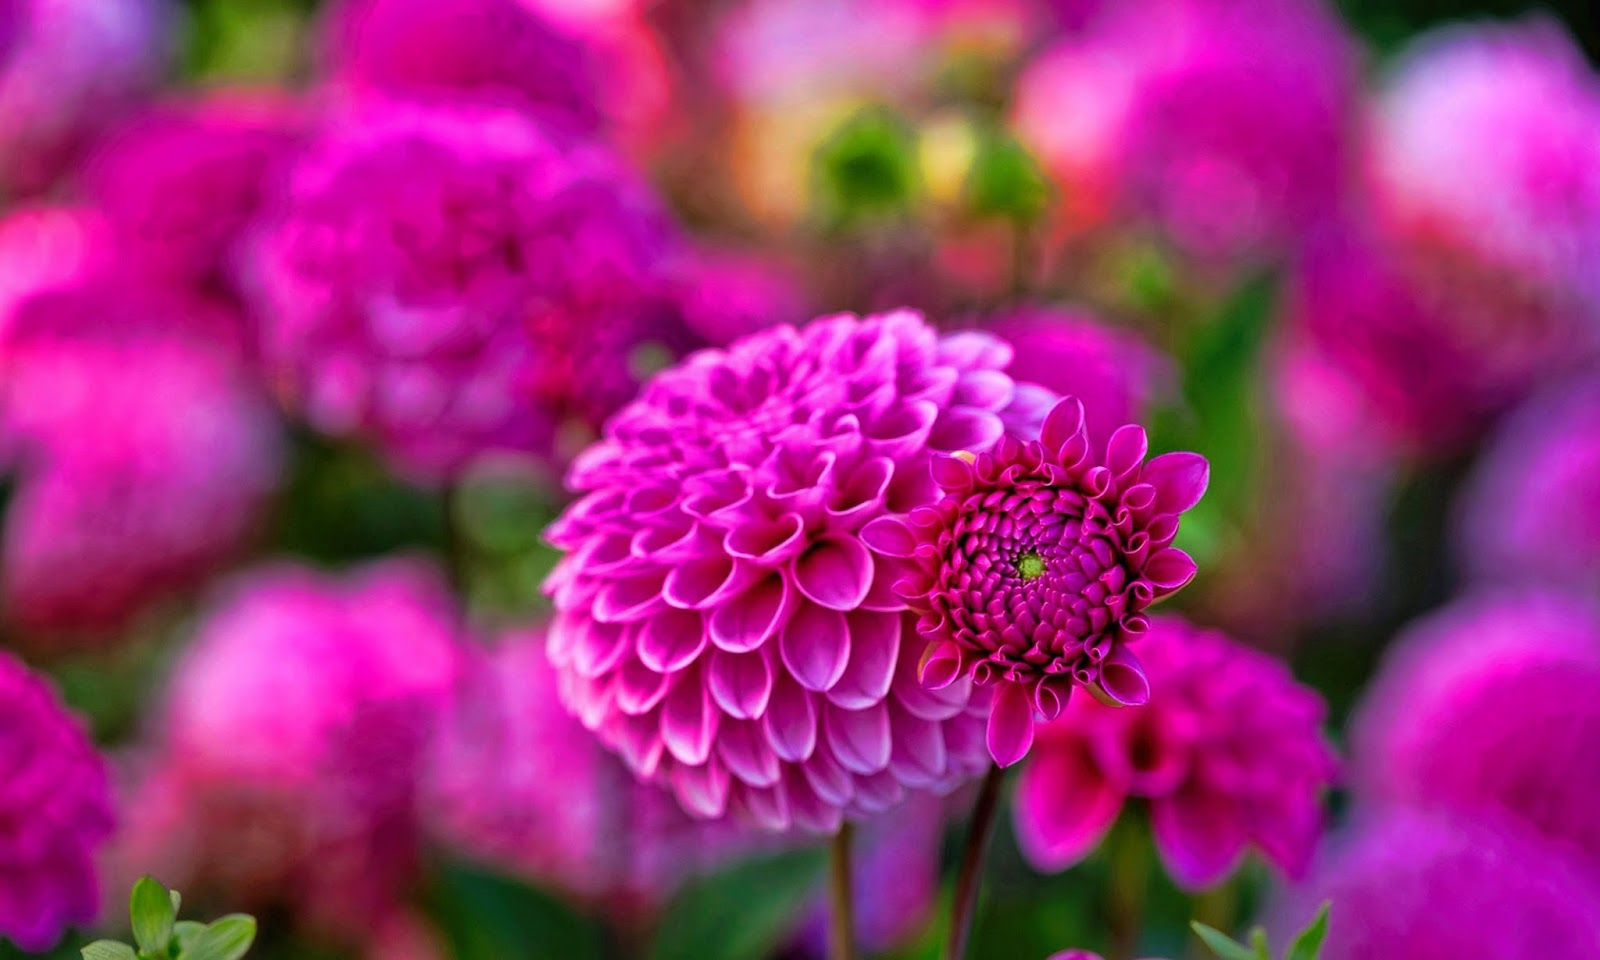 Dahlia Flower HD Wallpapers | HD Wallpapers (High Definition) | Free Background